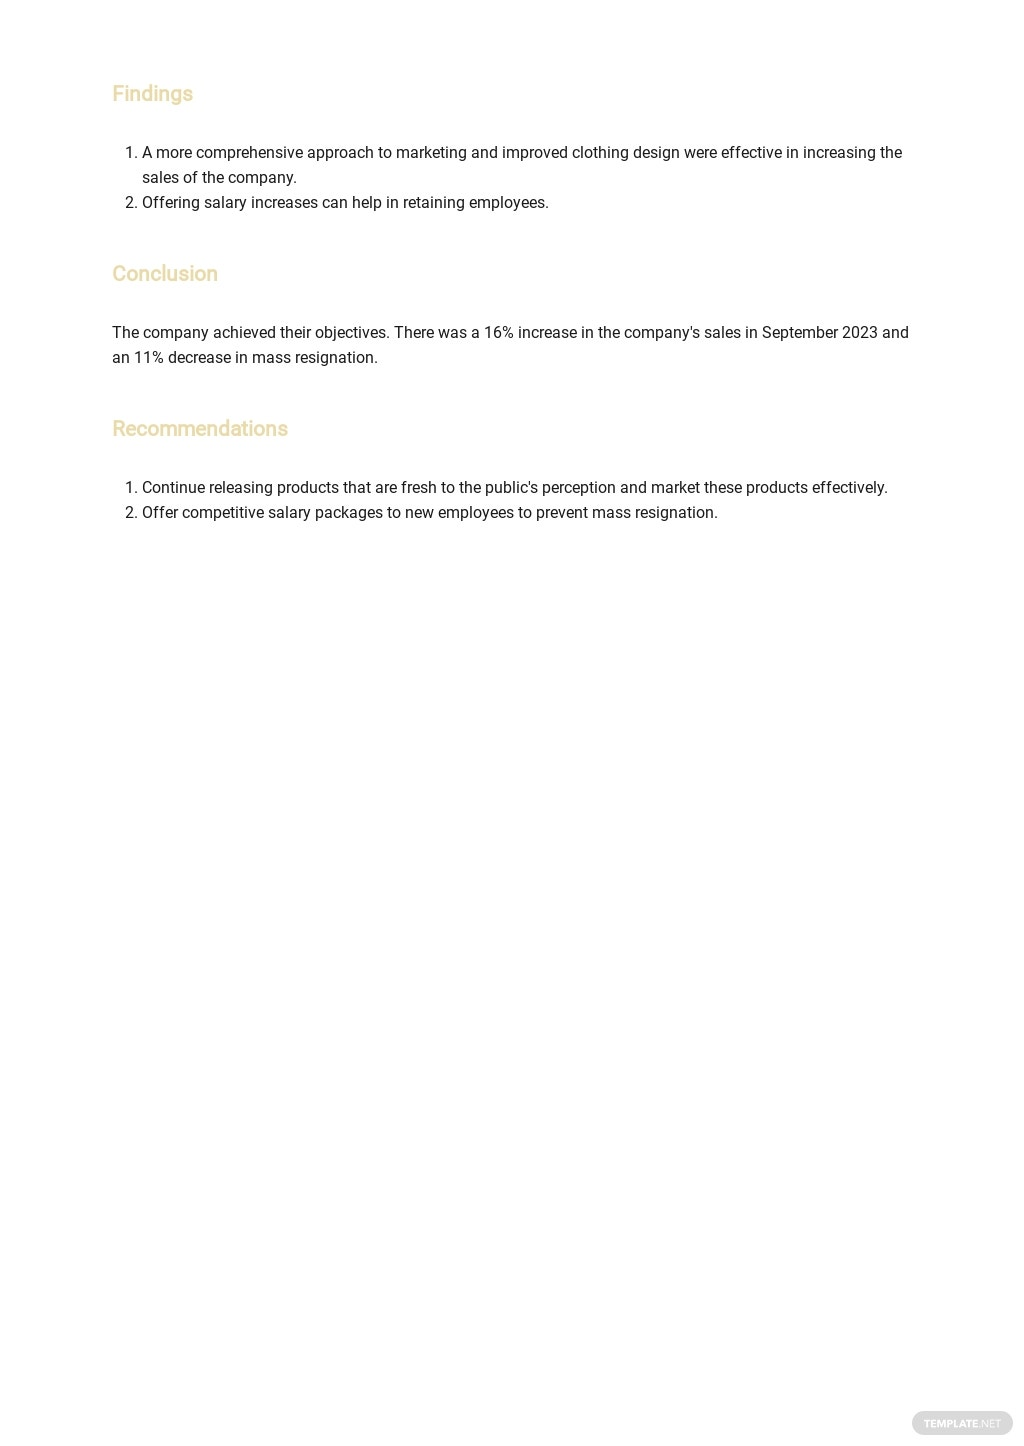 Management Report To Board of Directors Template 3.jpe